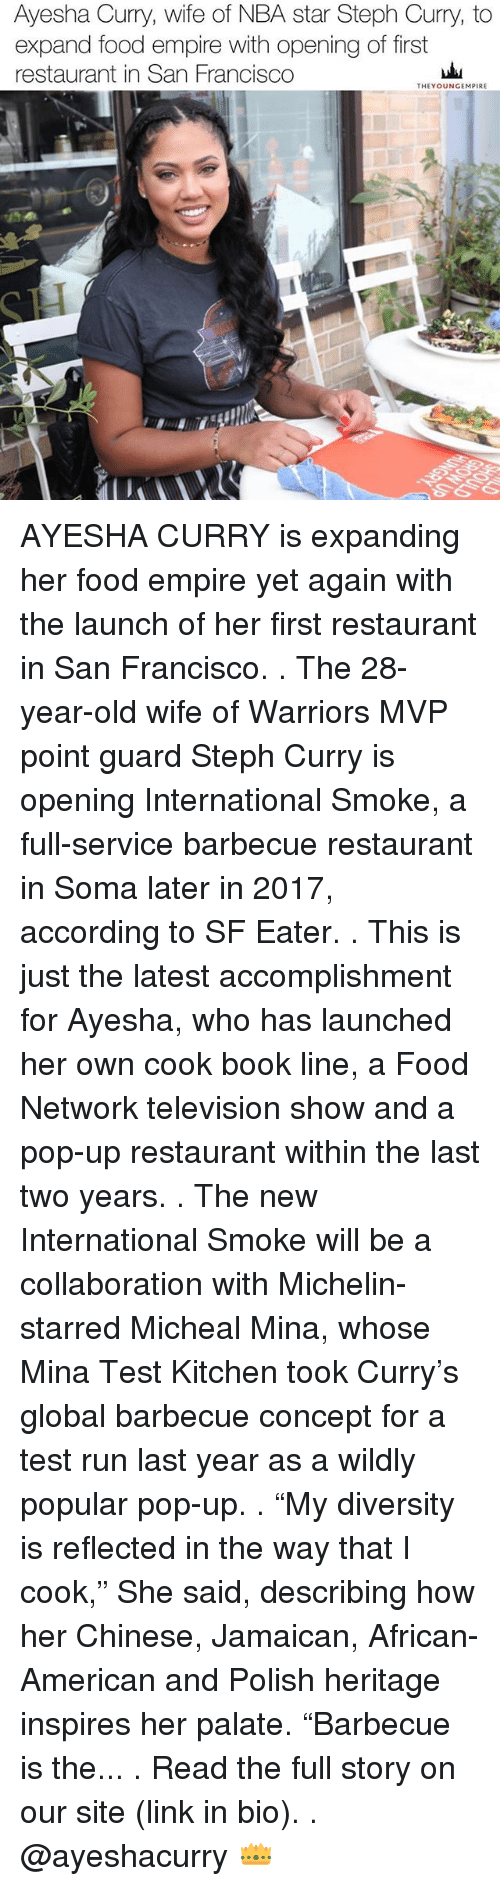 "Ayesha Curry, Empire, and Food: Ayesha Curry, wife of NBA star Steph Curry, to  expand food empire with opening of first  restaurant in San Francisco  THEY OUNGEMPIRE AYESHA CURRY is expanding her food empire yet again with the launch of her first restaurant in San Francisco. . The 28-year-old wife of Warriors MVP point guard Steph Curry is opening International Smoke, a full-service barbecue restaurant in Soma later in 2017, according to SF Eater. . This is just the latest accomplishment for Ayesha, who has launched her own cook book line, a Food Network television show and a pop-up restaurant within the last two years. . The new International Smoke will be a collaboration with Michelin-starred Micheal Mina, whose Mina Test Kitchen took Curry's global barbecue concept for a test run last year as a wildly popular pop-up. . ""My diversity is reflected in the way that I cook,"" She said, describing how her Chinese, Jamaican, African-American and Polish heritage inspires her palate. ""Barbecue is the... . Read the full story on our site (link in bio). . @ayeshacurry 👑"